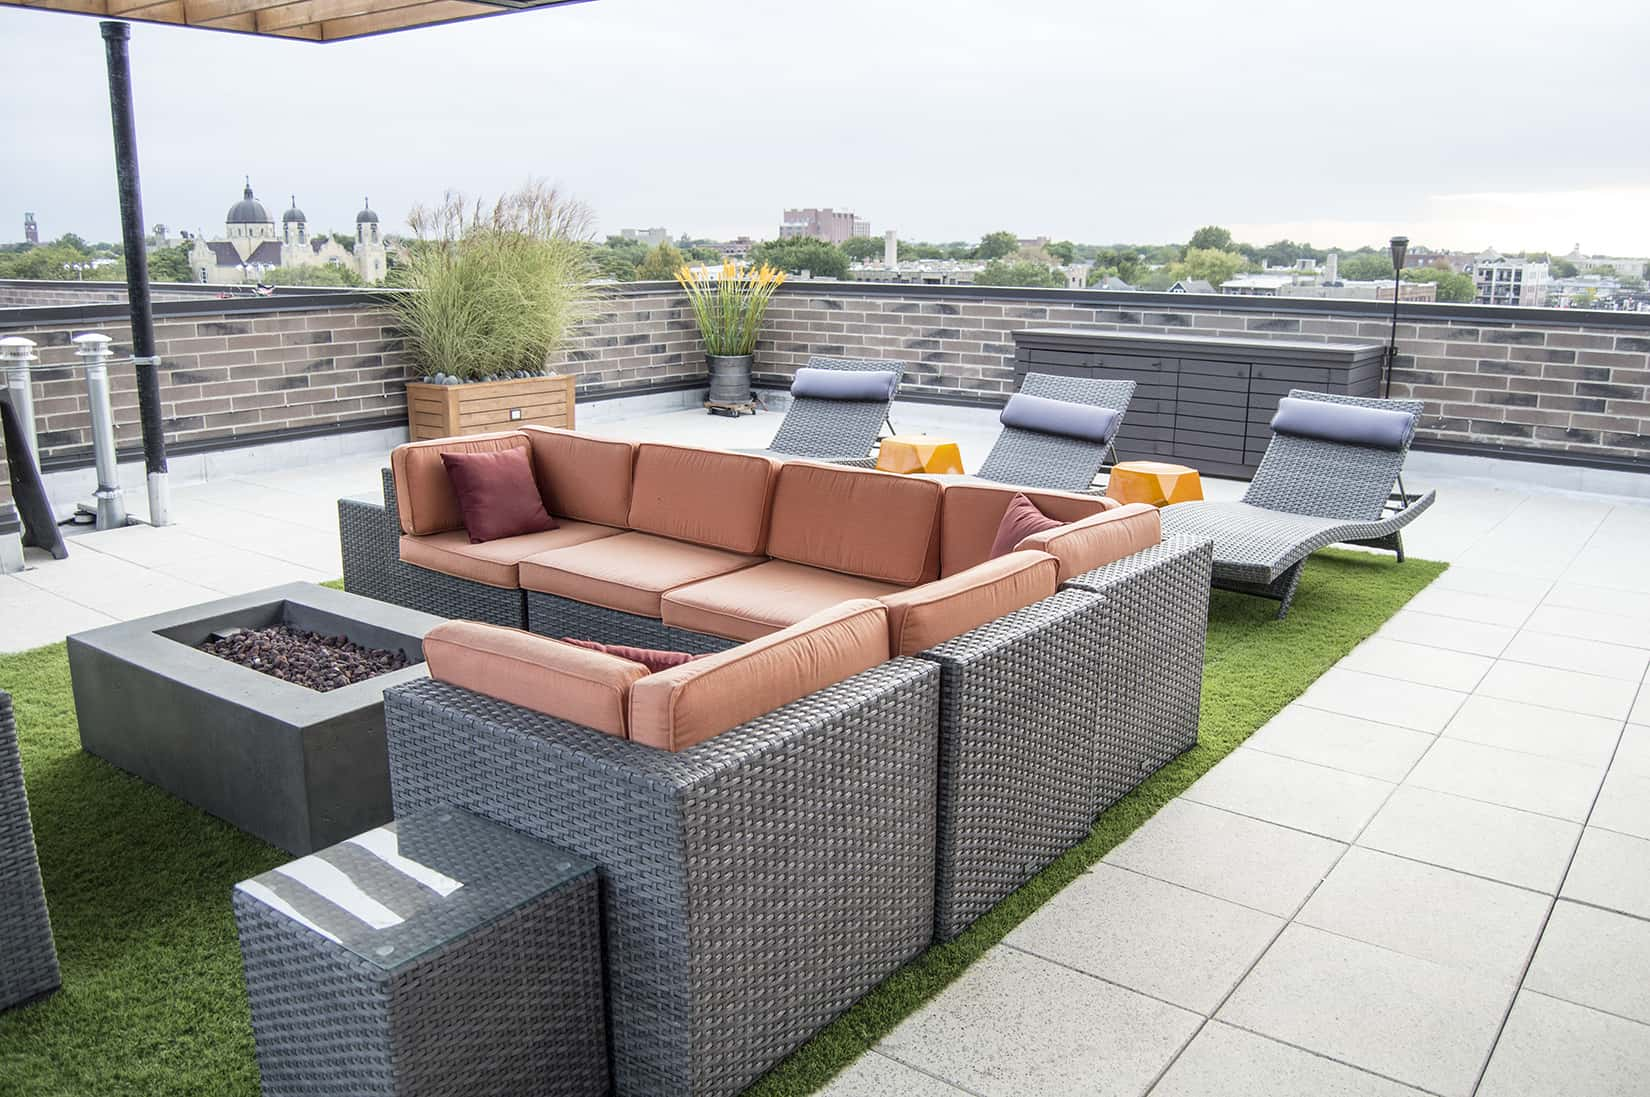 Rooftop Lounge Fire Pit Pergola Planters Turf Uptown Chicago